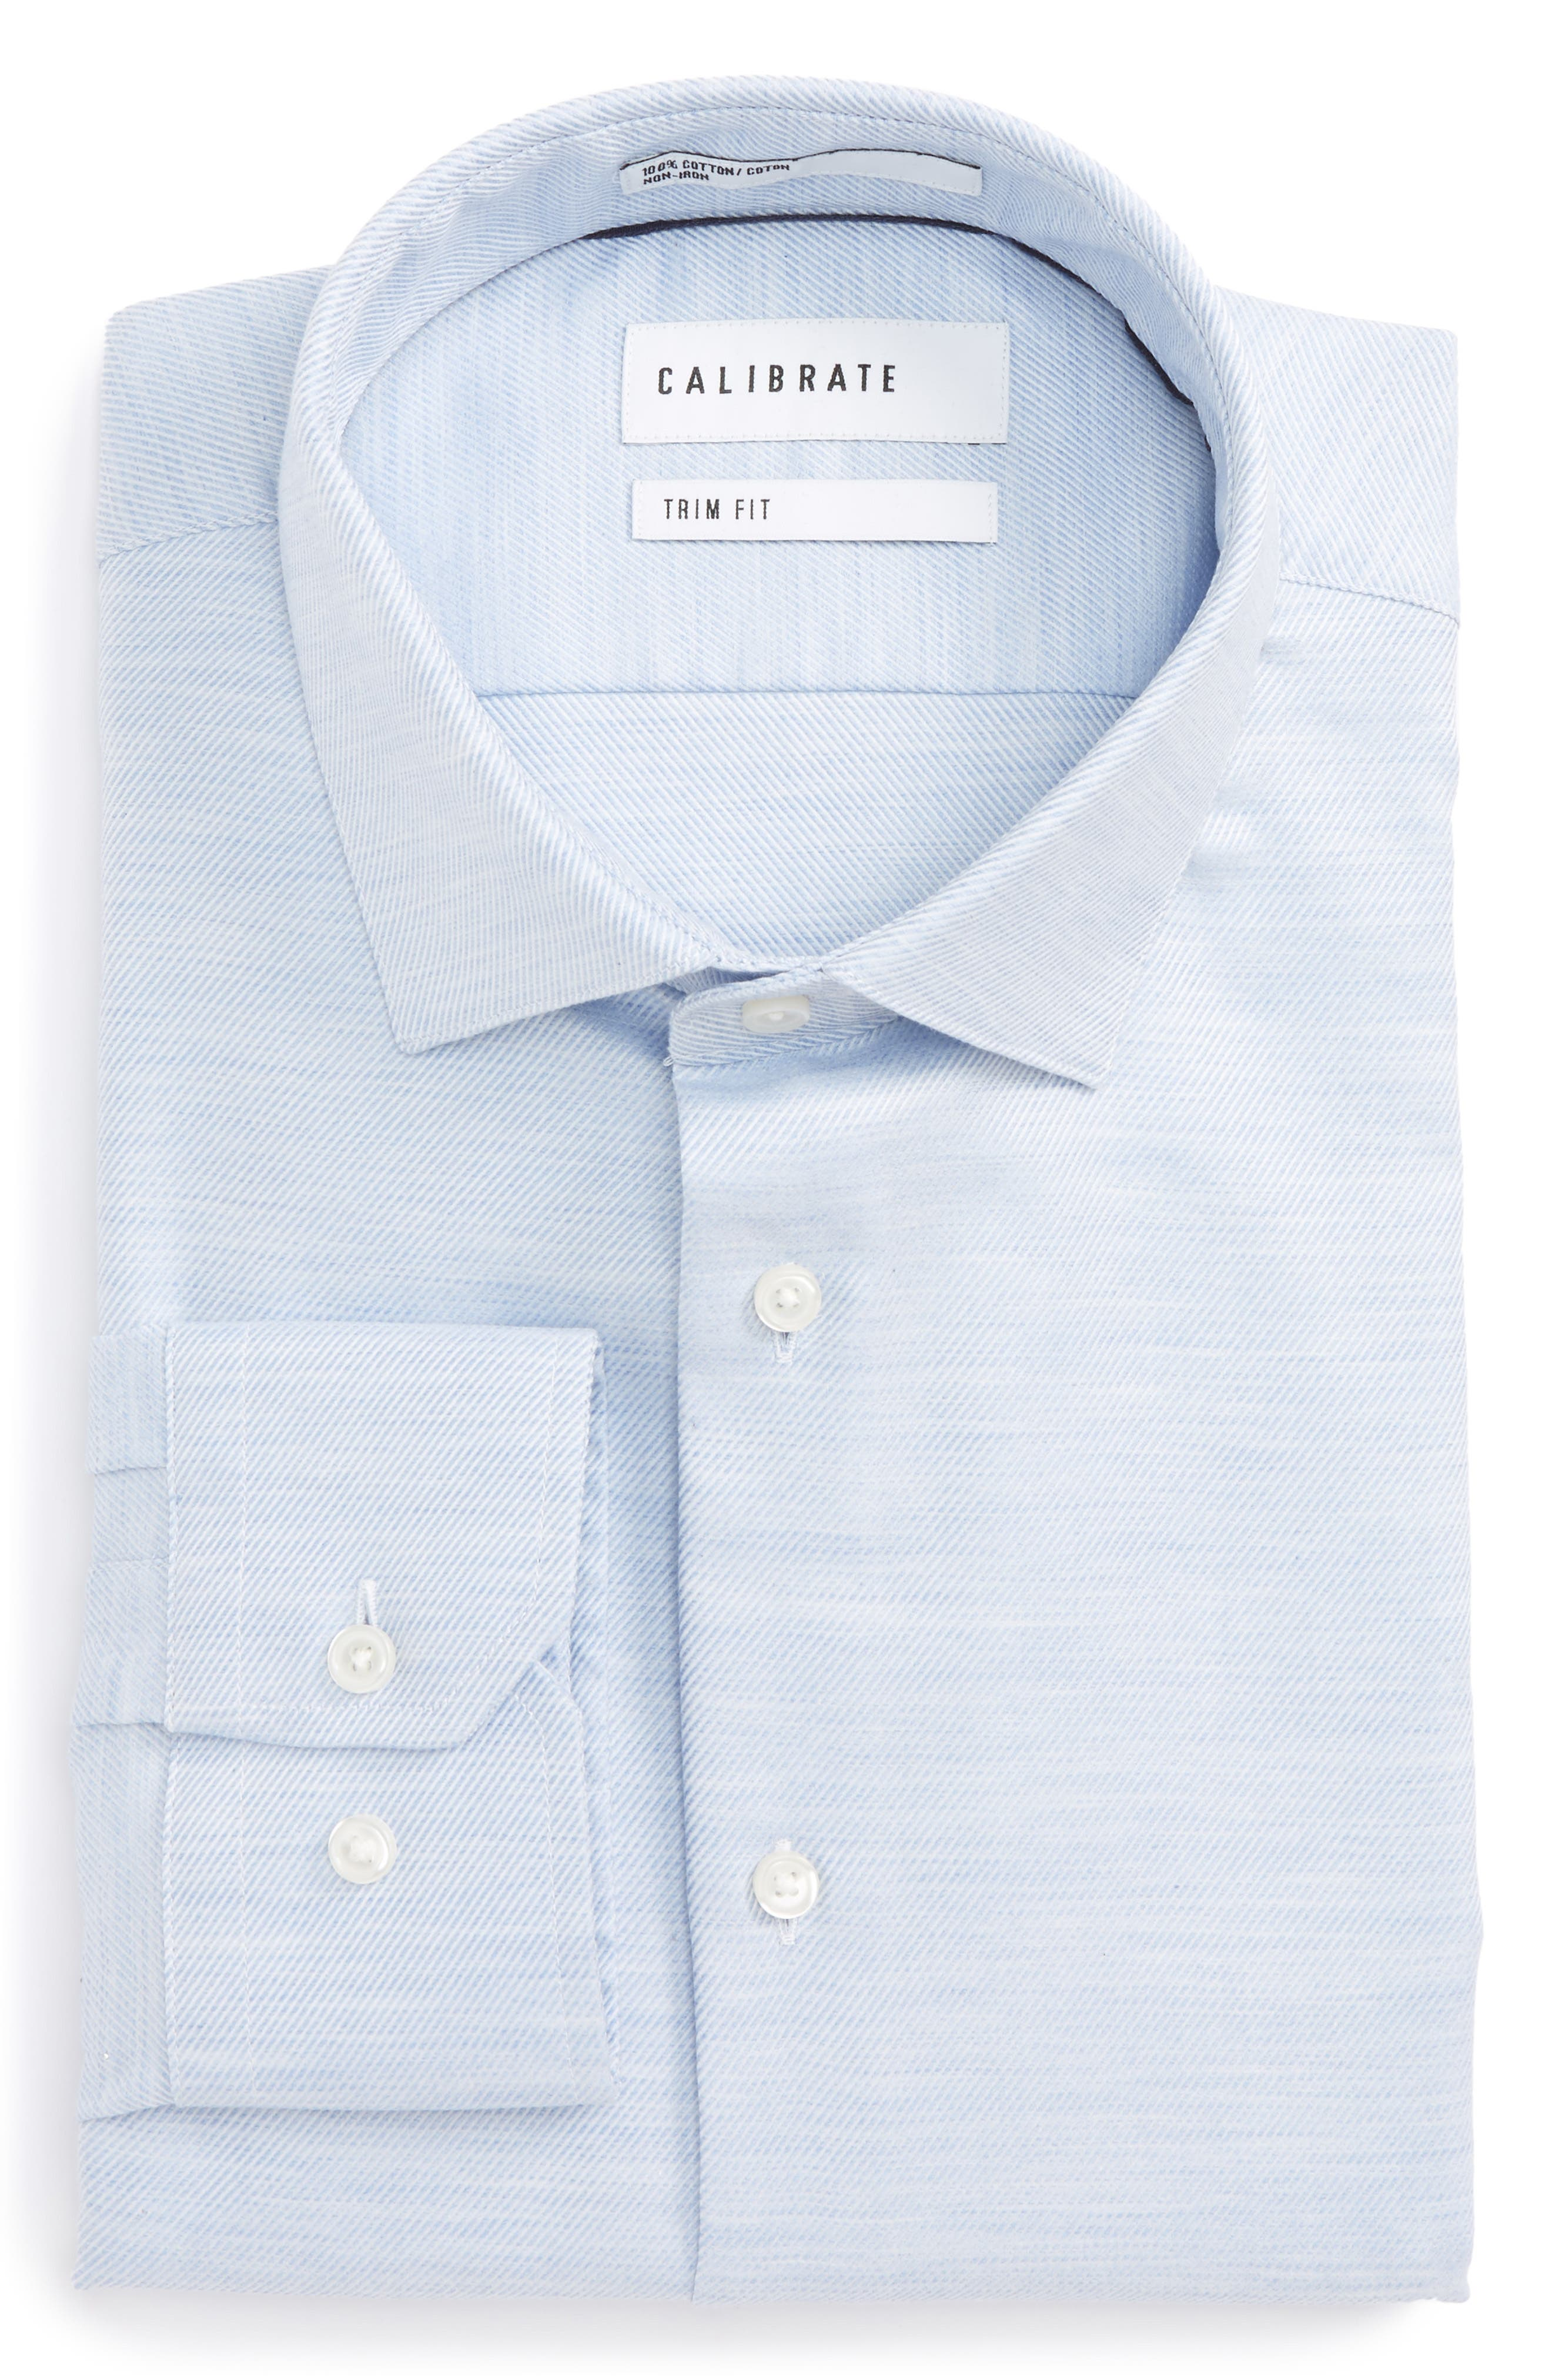 Calibrate Trim Fit Twill Dress Shirt